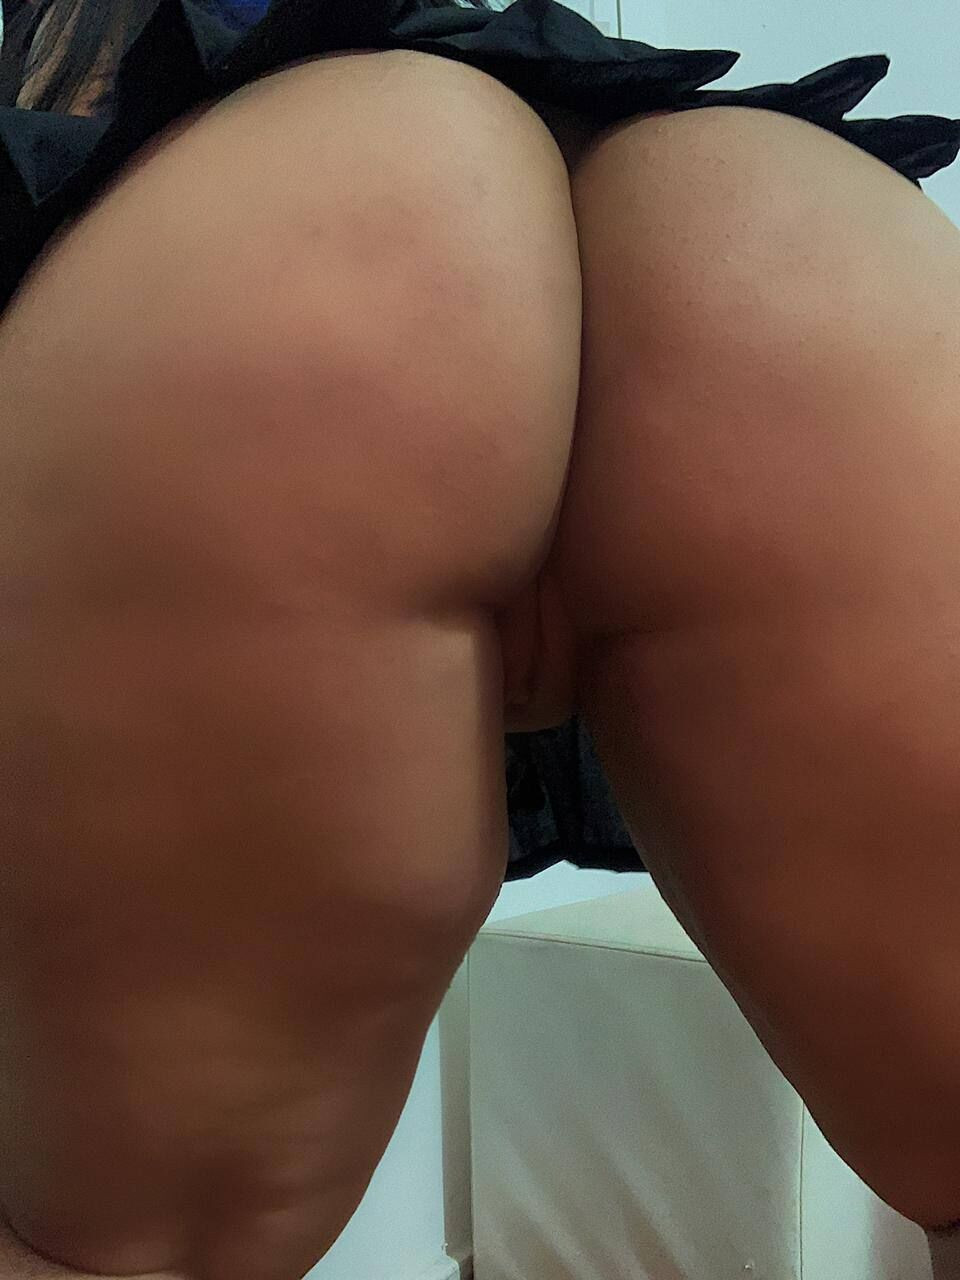 Victoria Matosa onlyfans nudes leaks thefappening.nu 53